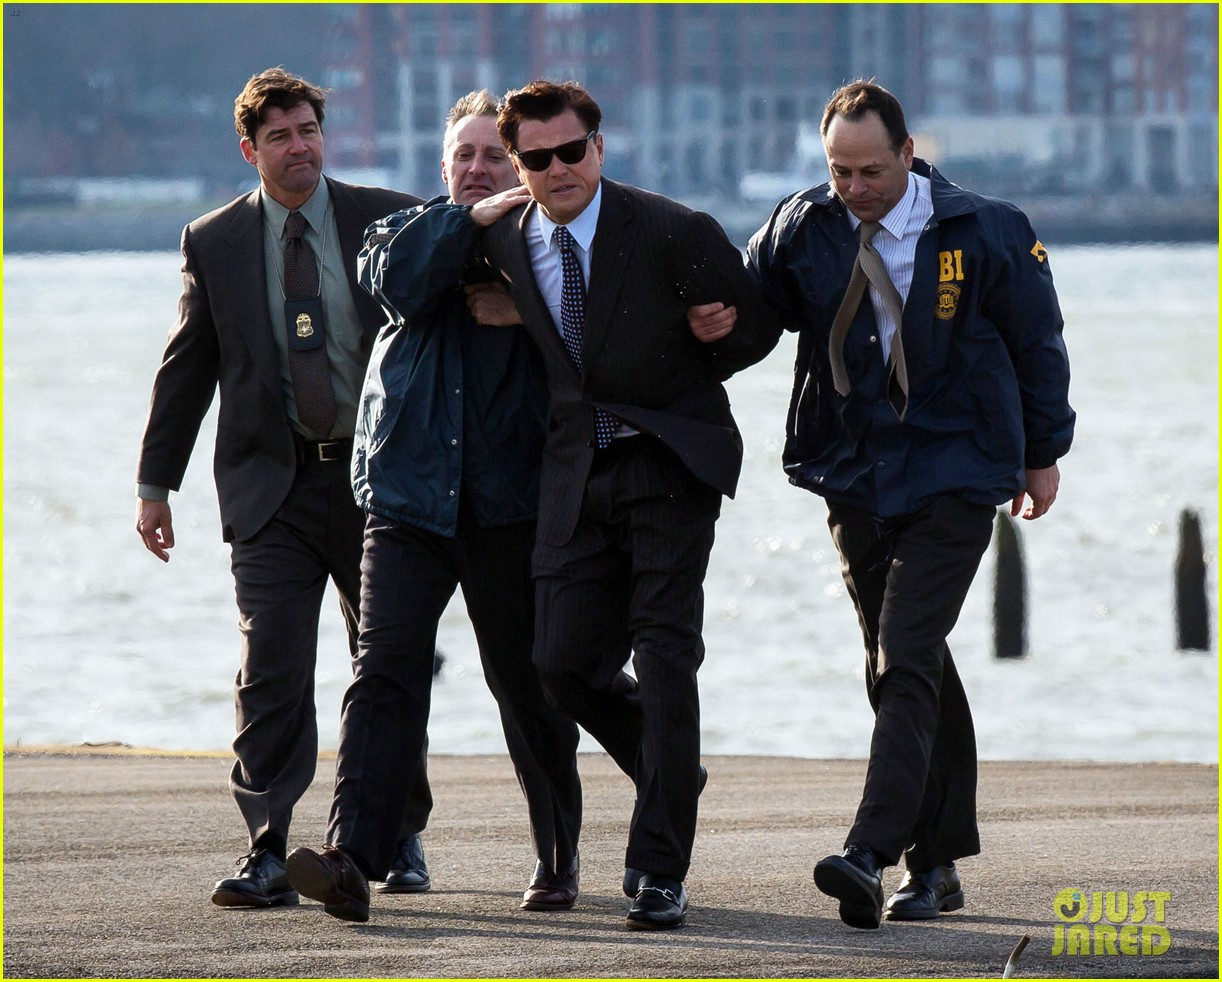 c14e3a0f0fe Leonardo DiCaprio  Arrested for  Wolf of Wall Street !  Photo 2765448